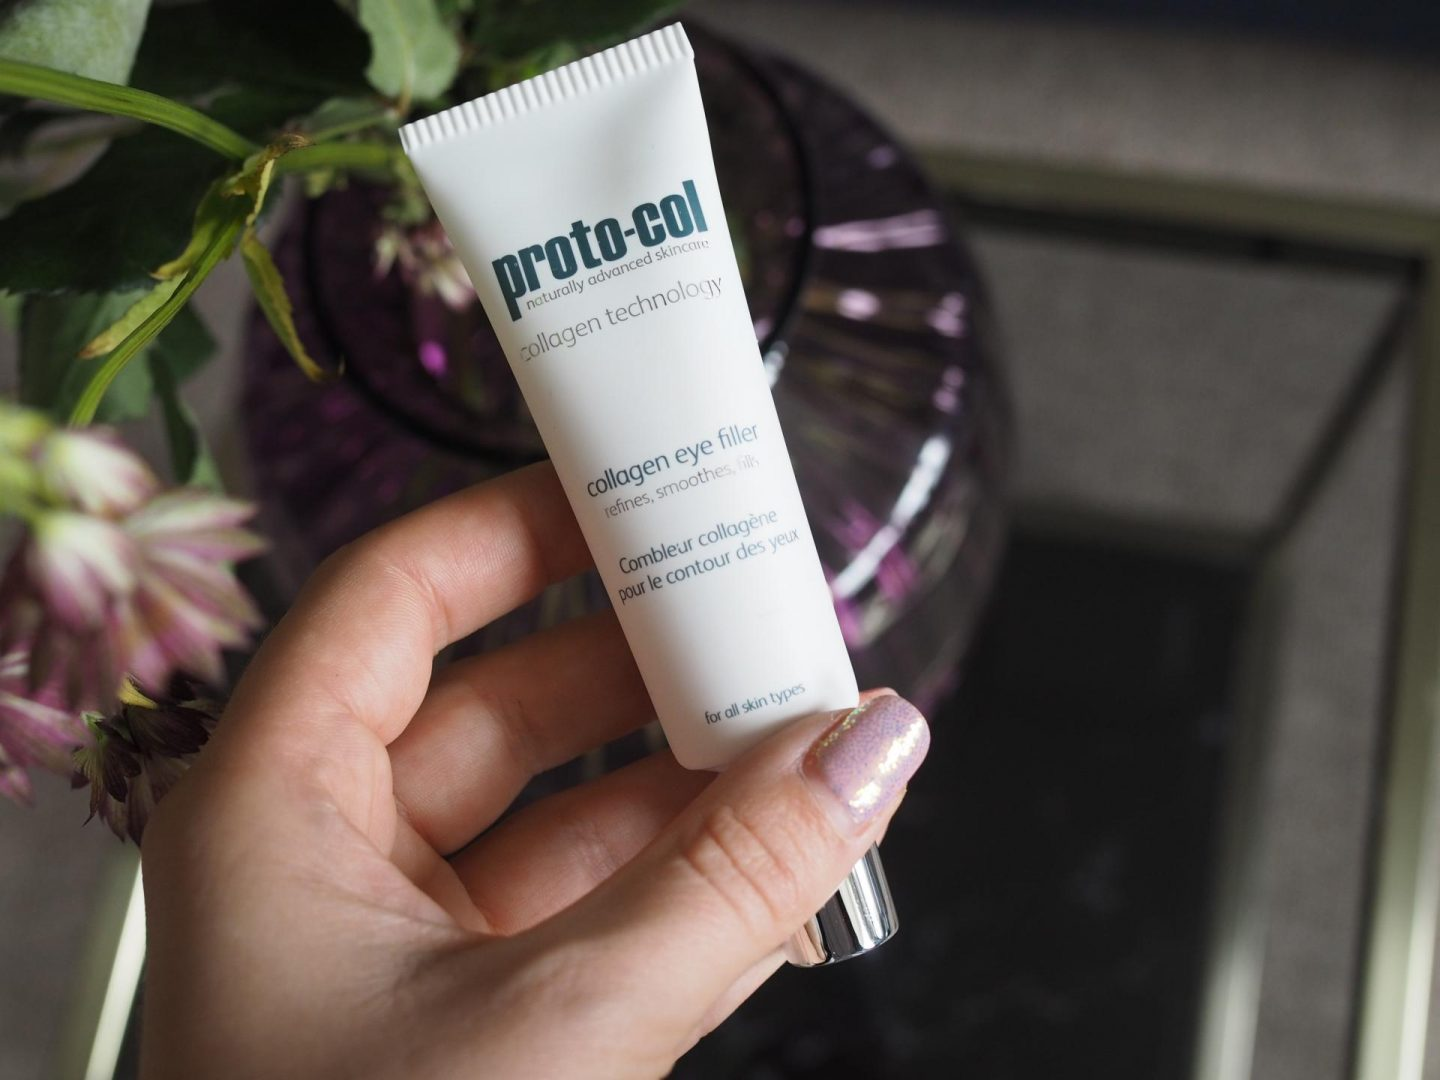 Protocol Collagen Eye Filler